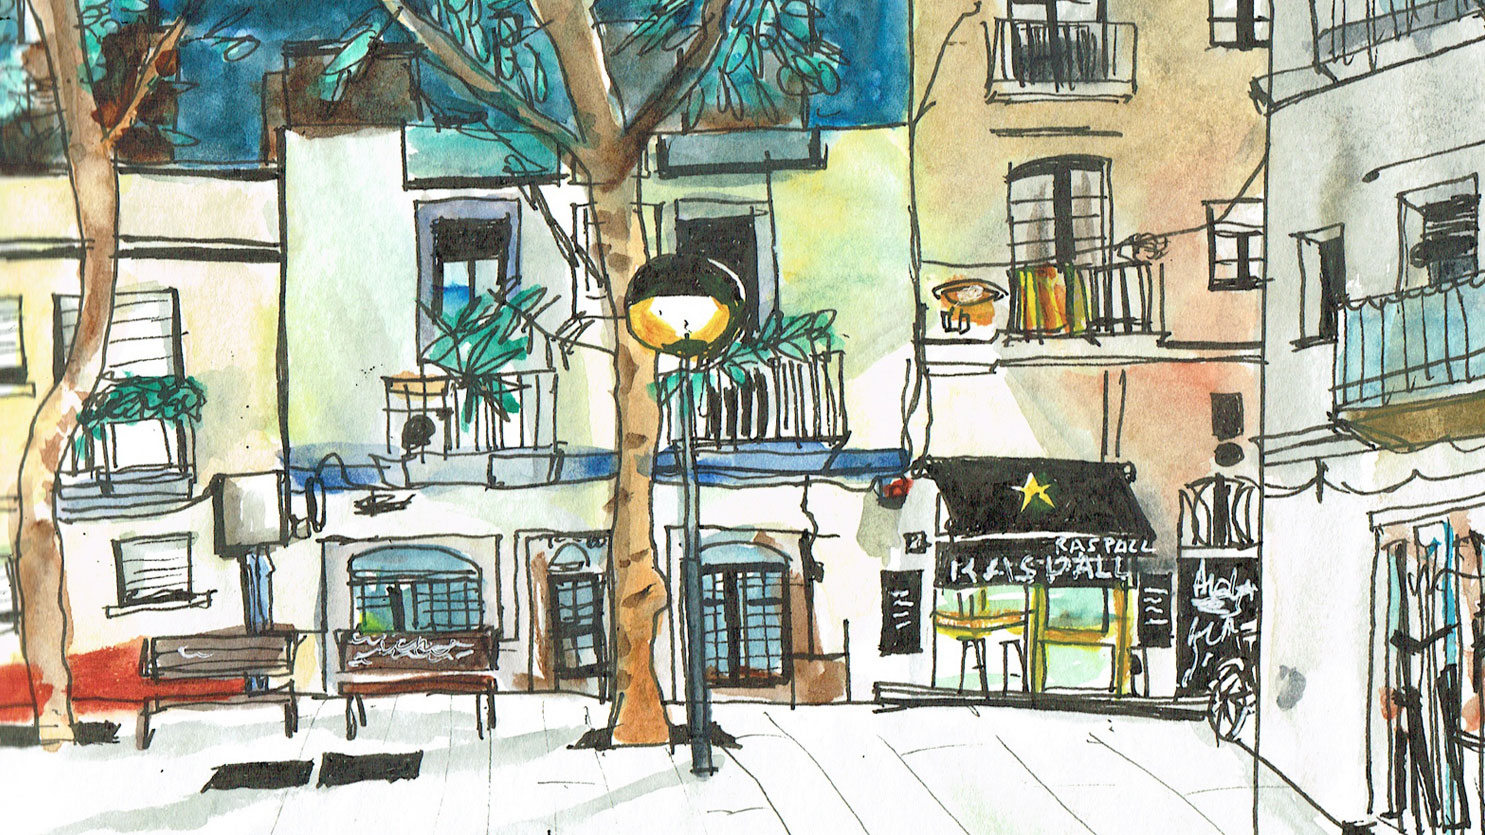 Urban sketching project - My sketches